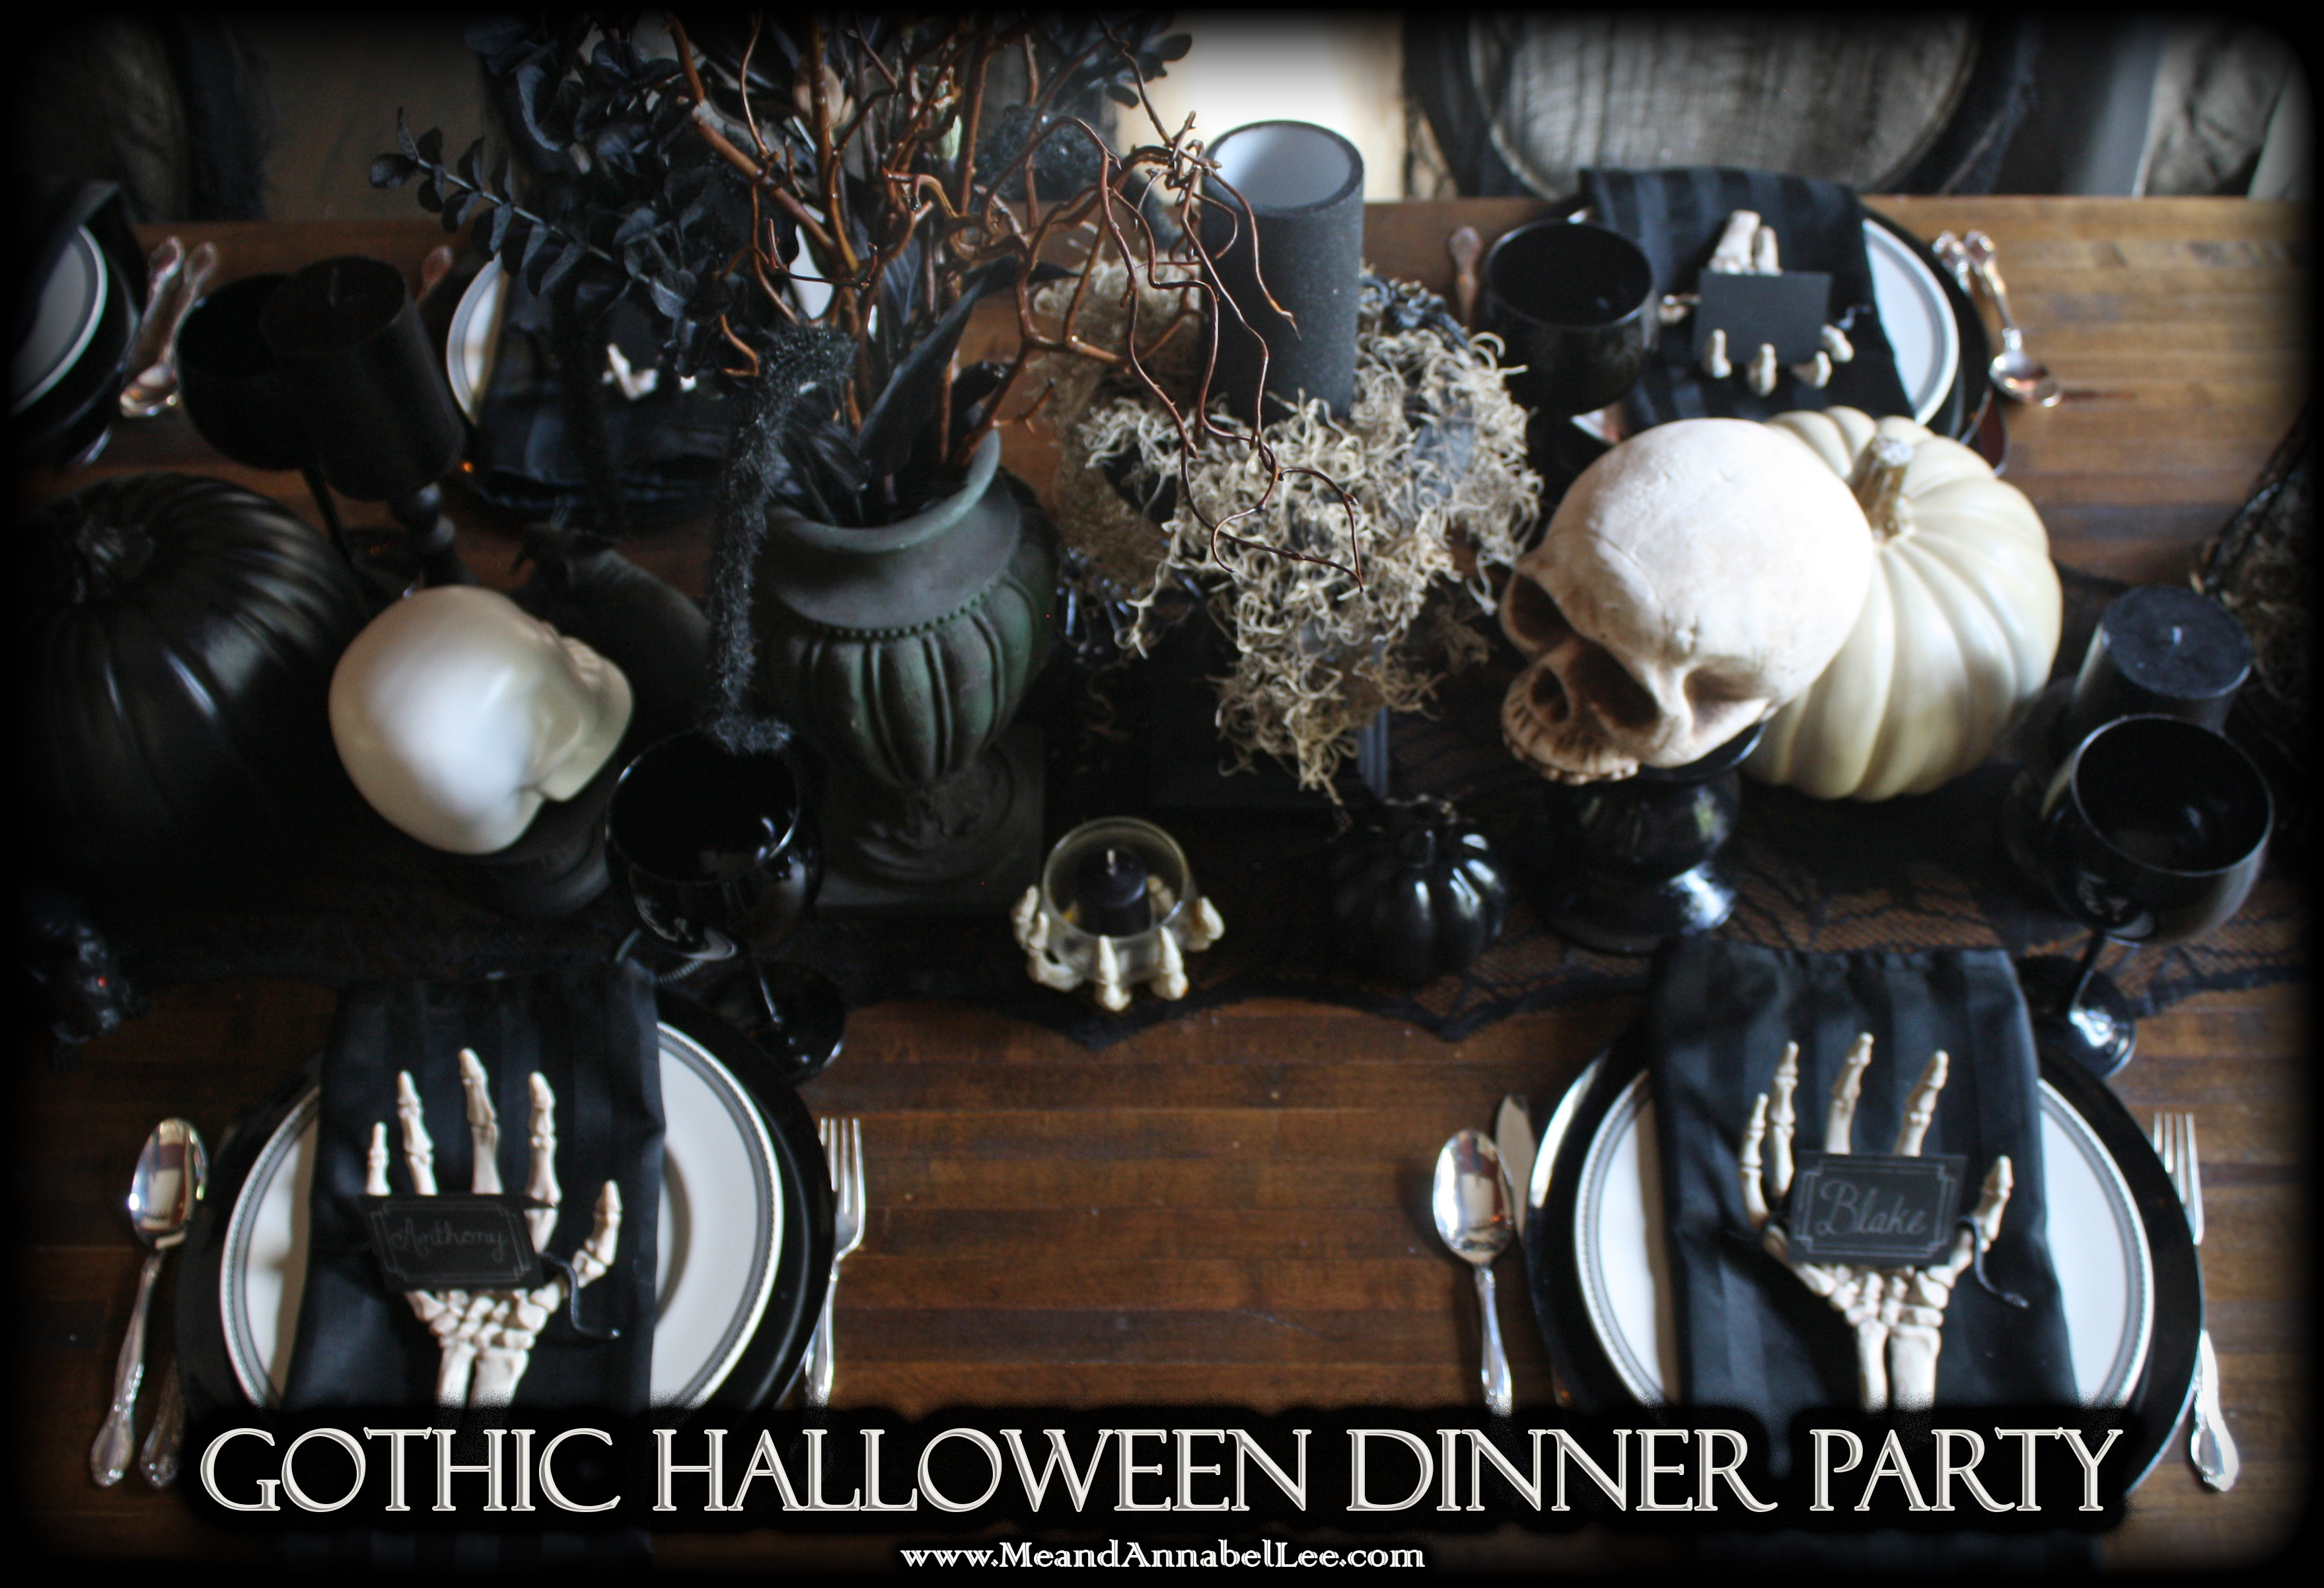 Halloween Dinner Party Menu.Halloween Dinner Party Gothic Entertaining Me And